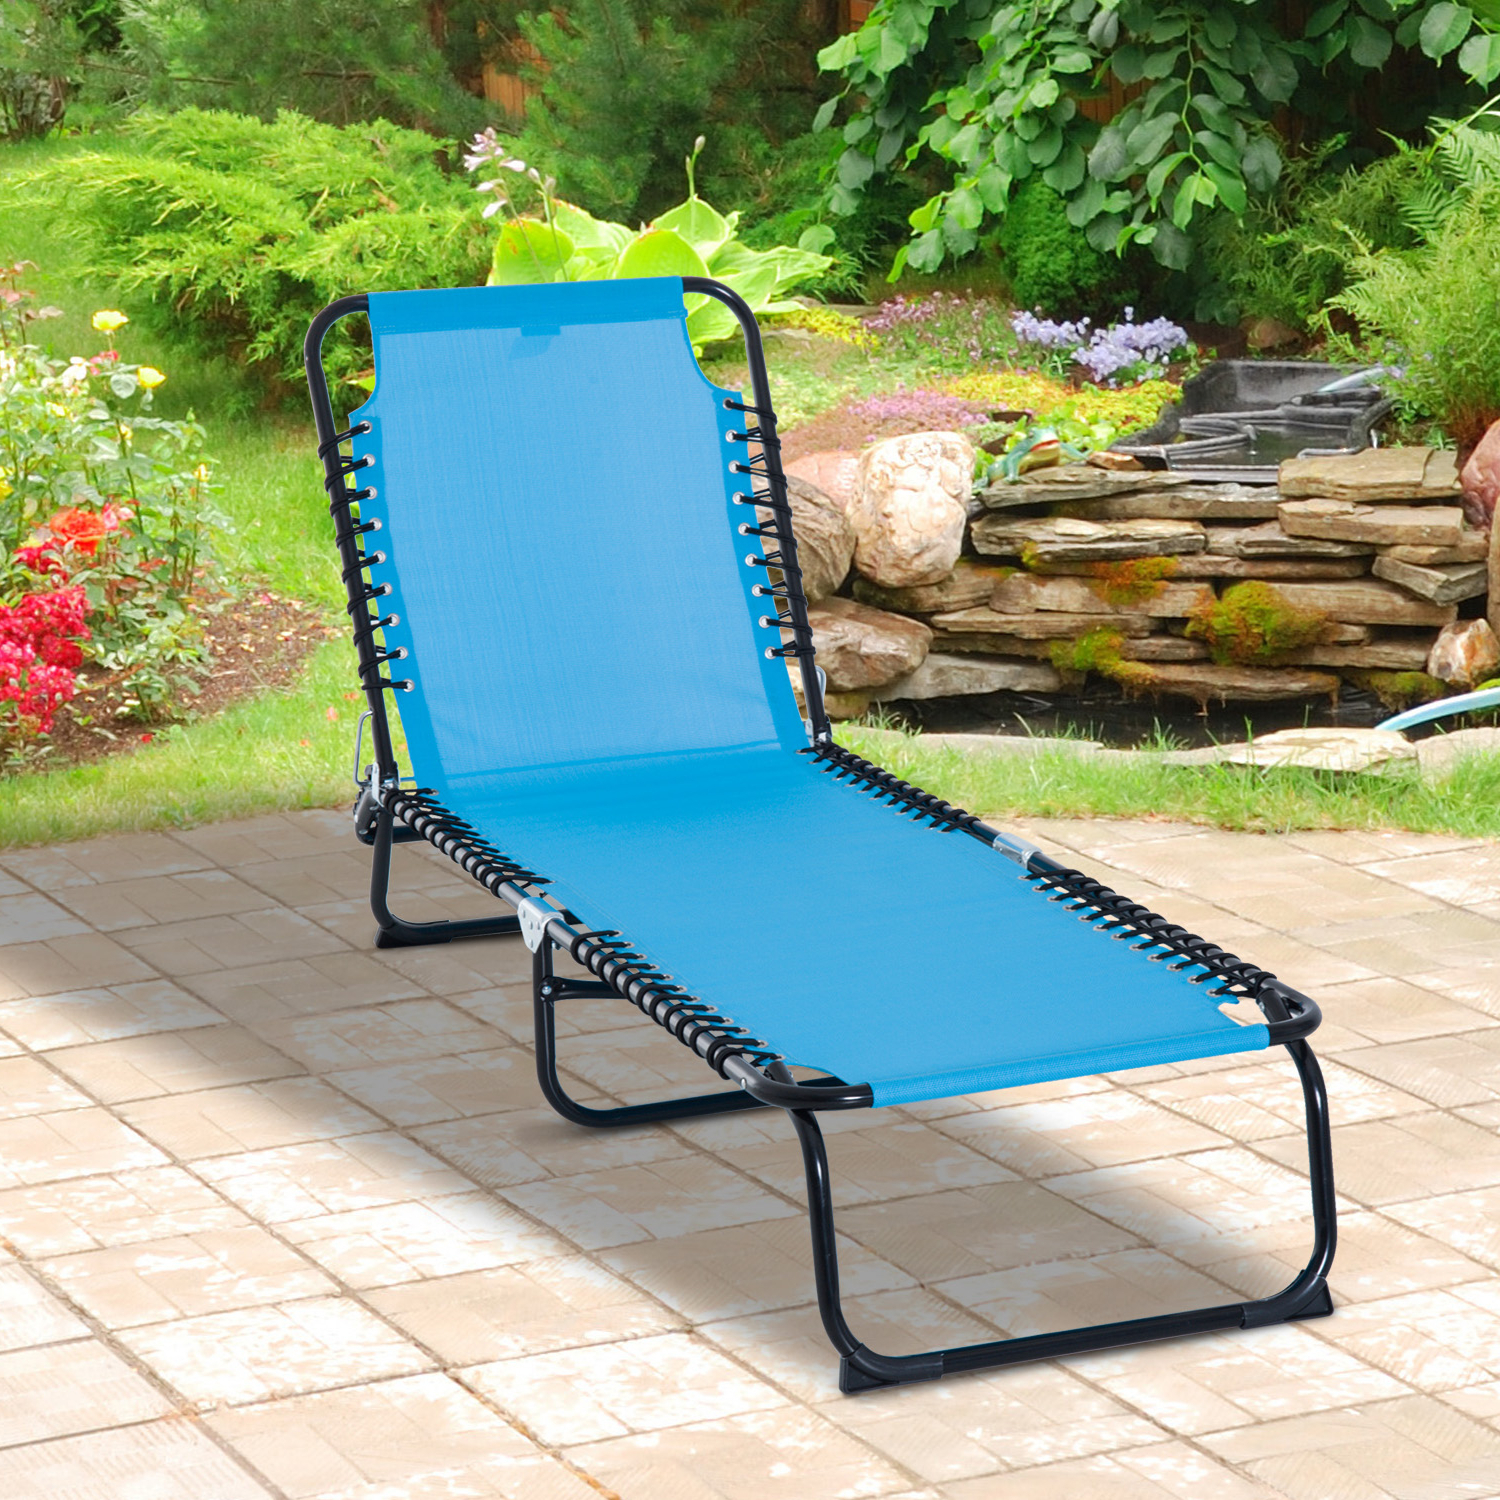 Outsunny 3 Position Portable Reclining Beach Chaise Lounge Folding Chair Outdoor Patio – Light Blue Throughout Popular Portable Reclining Beach Chaise Lounge Folding Chairs (View 6 of 25)